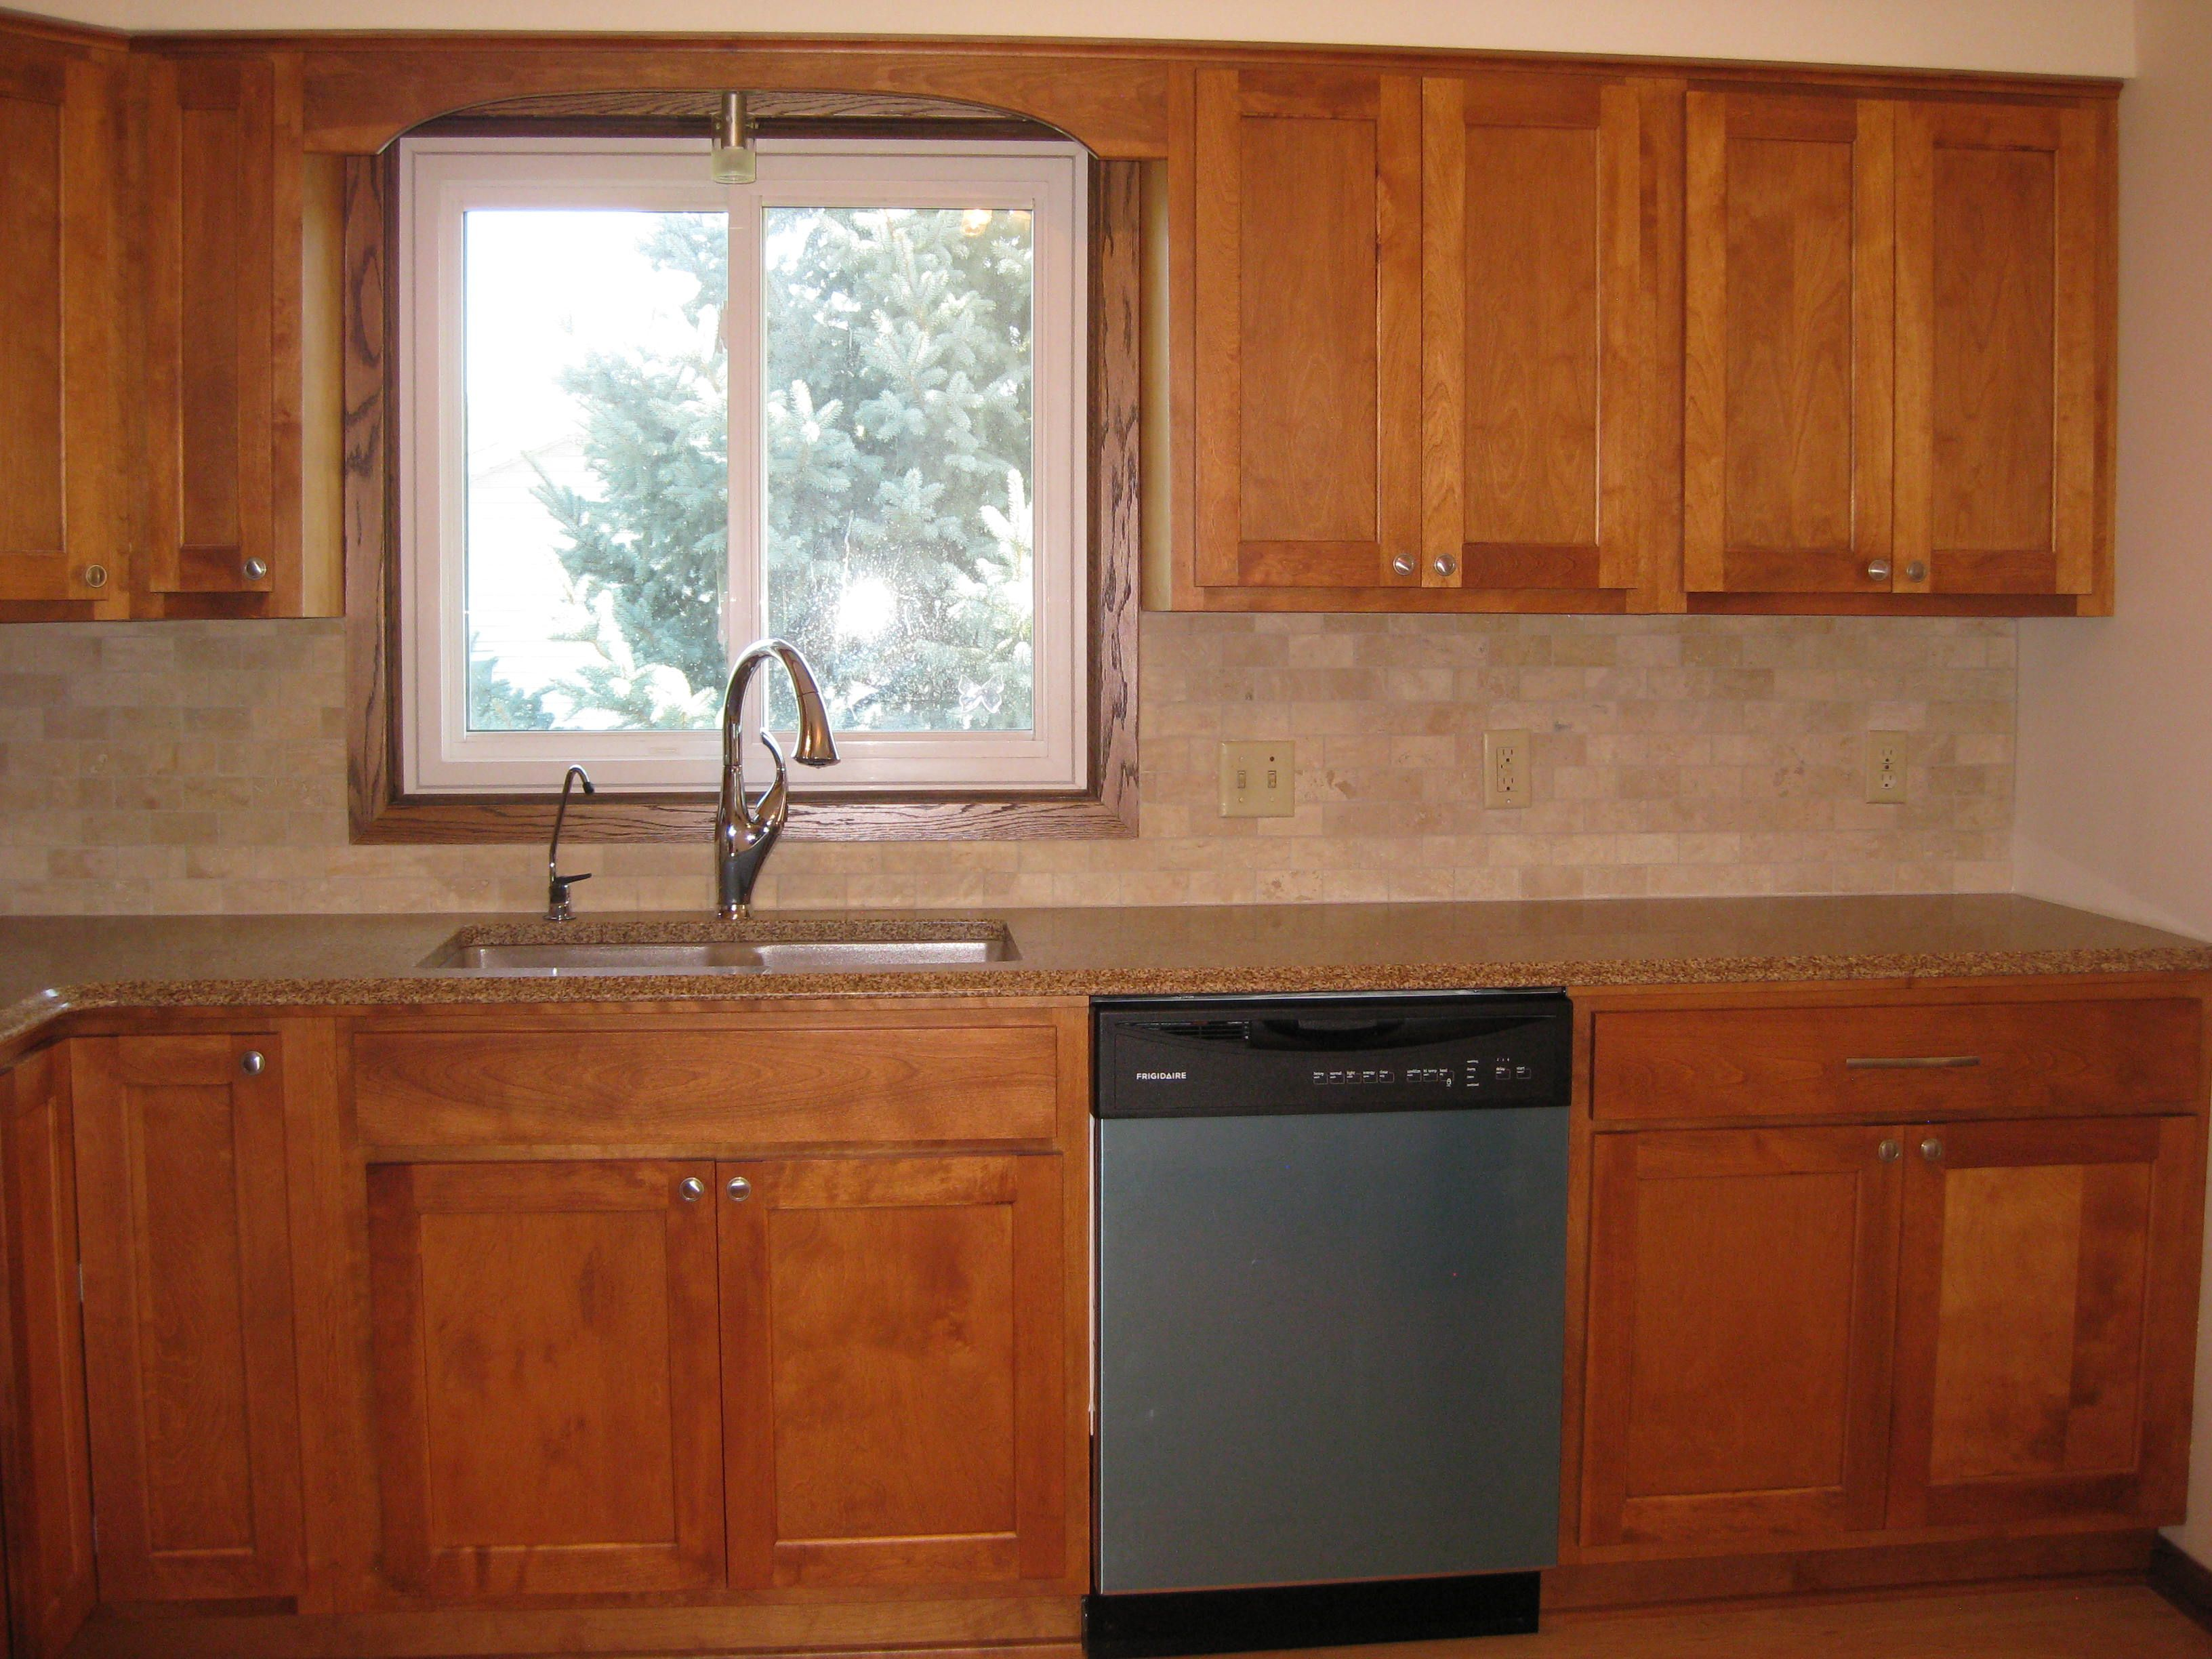 Woodbury Mn Kitchen Remodel Custom Maple Cabinets And Travertine Subway Tile Back Splash